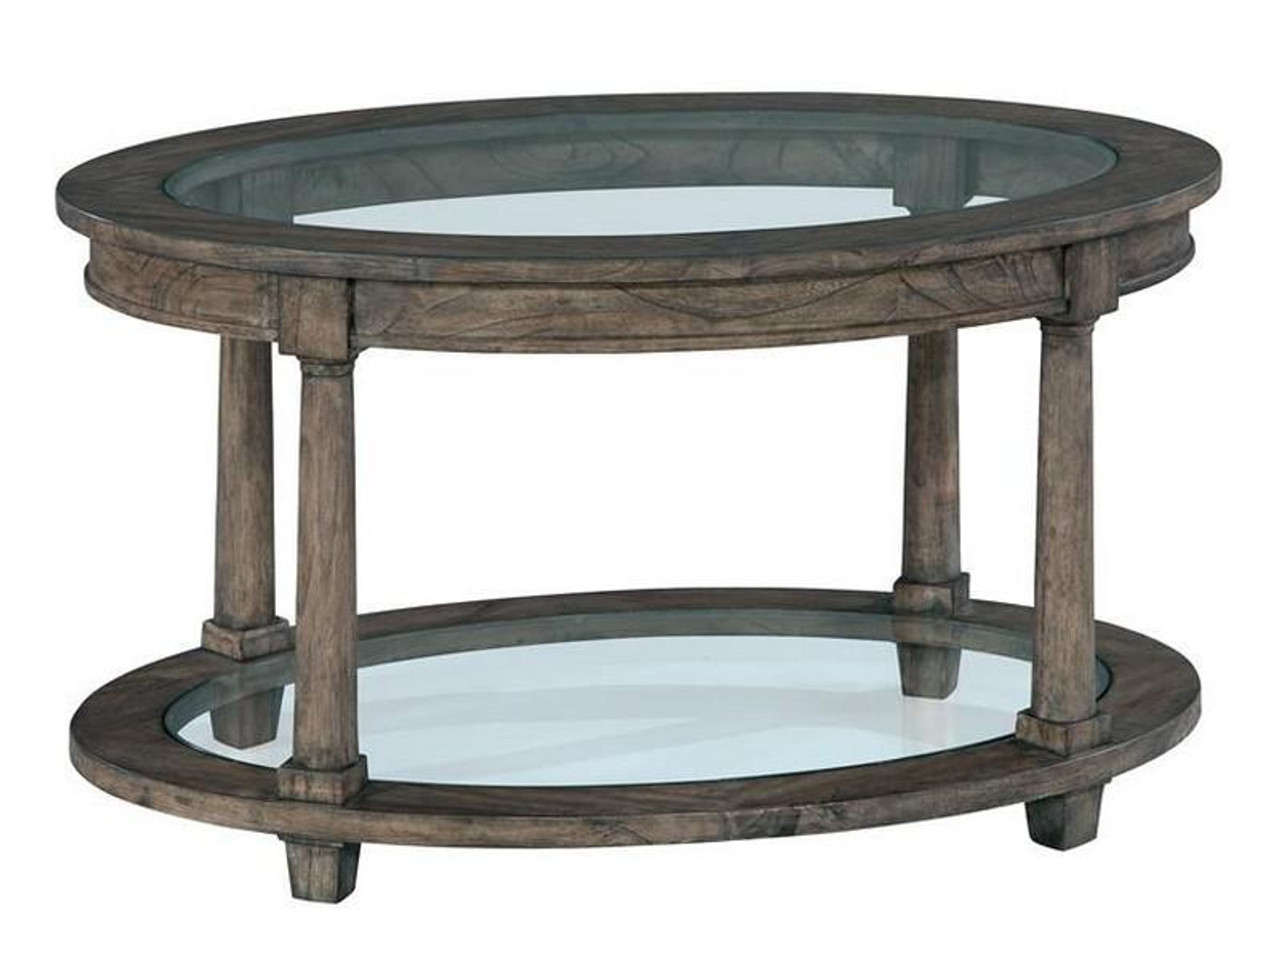 Picture of: 23505 Hekman Lincoln Park Oval Glass Top Coffee Table